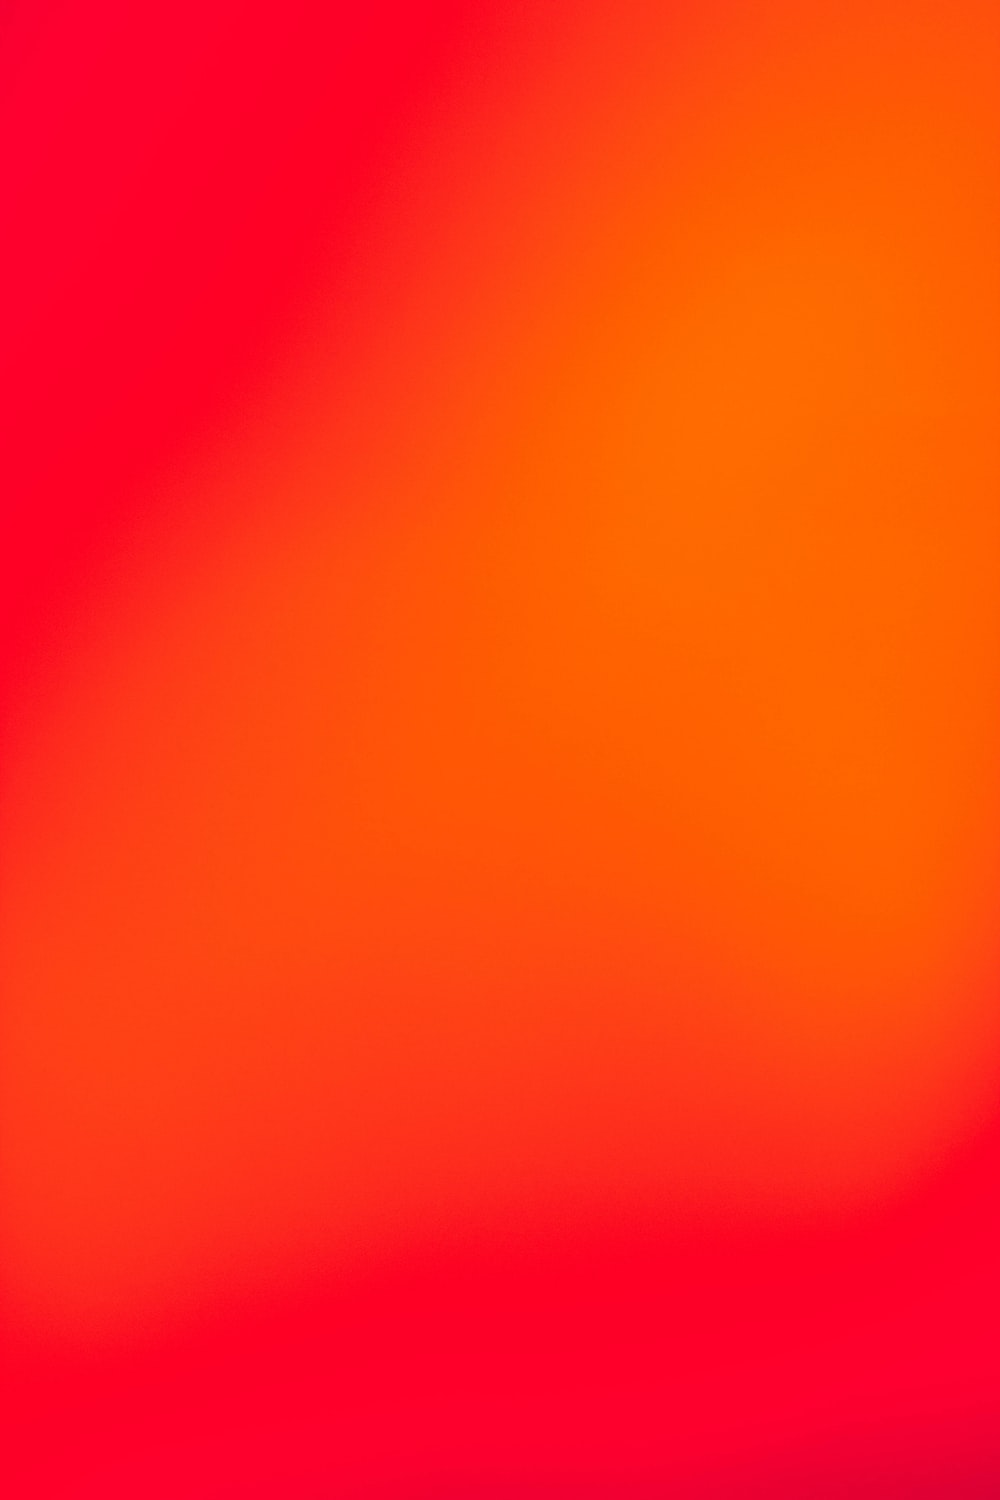 wallpaper Red Background – Enhance the Looks of Your Computer With this Beautiful Wallpaper